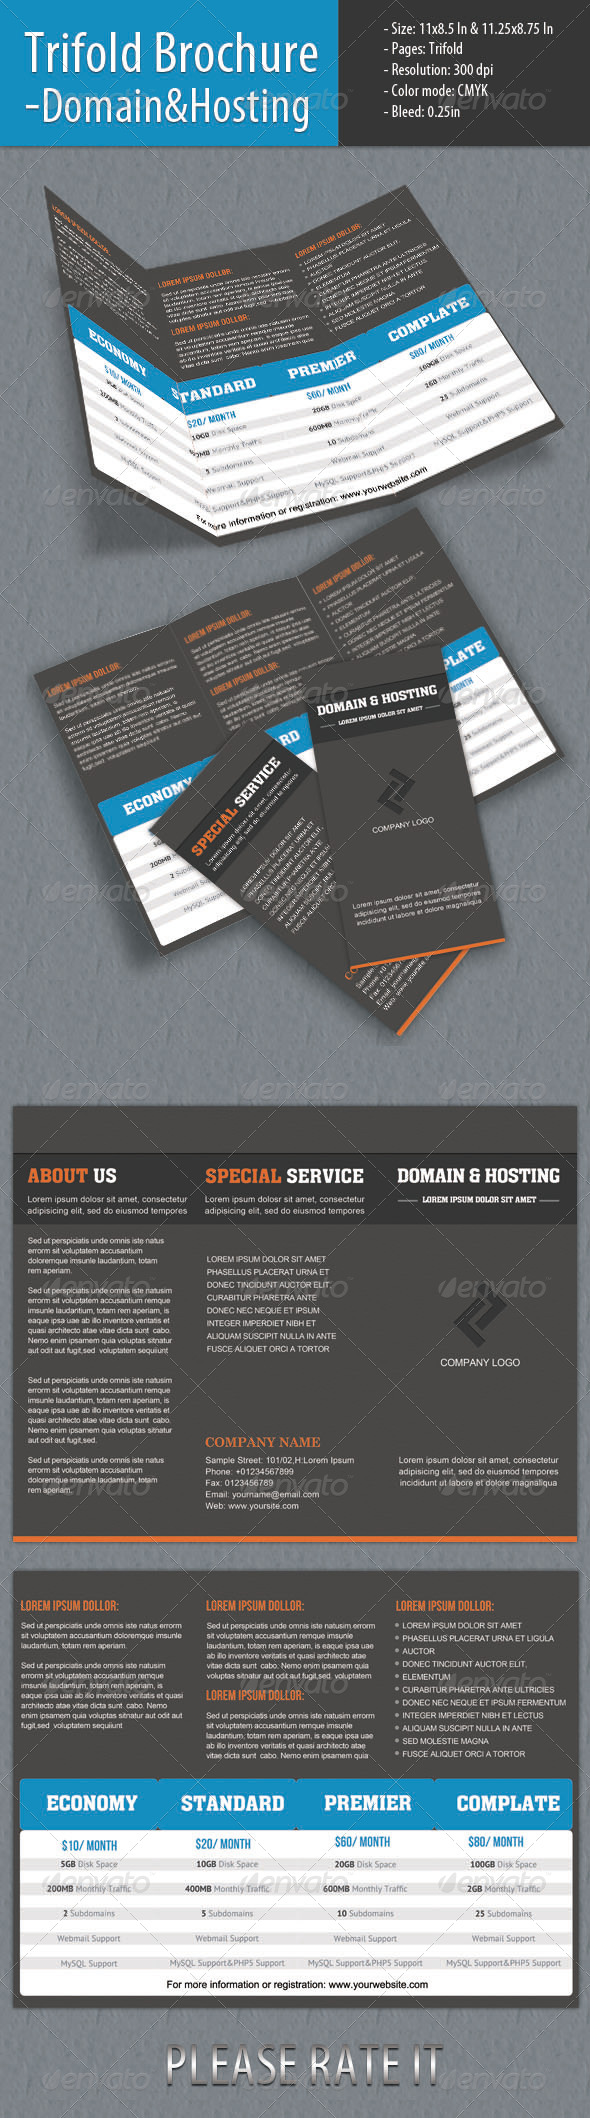 GraphicRiver Trifold Brochure Domain & Hosting 4418428